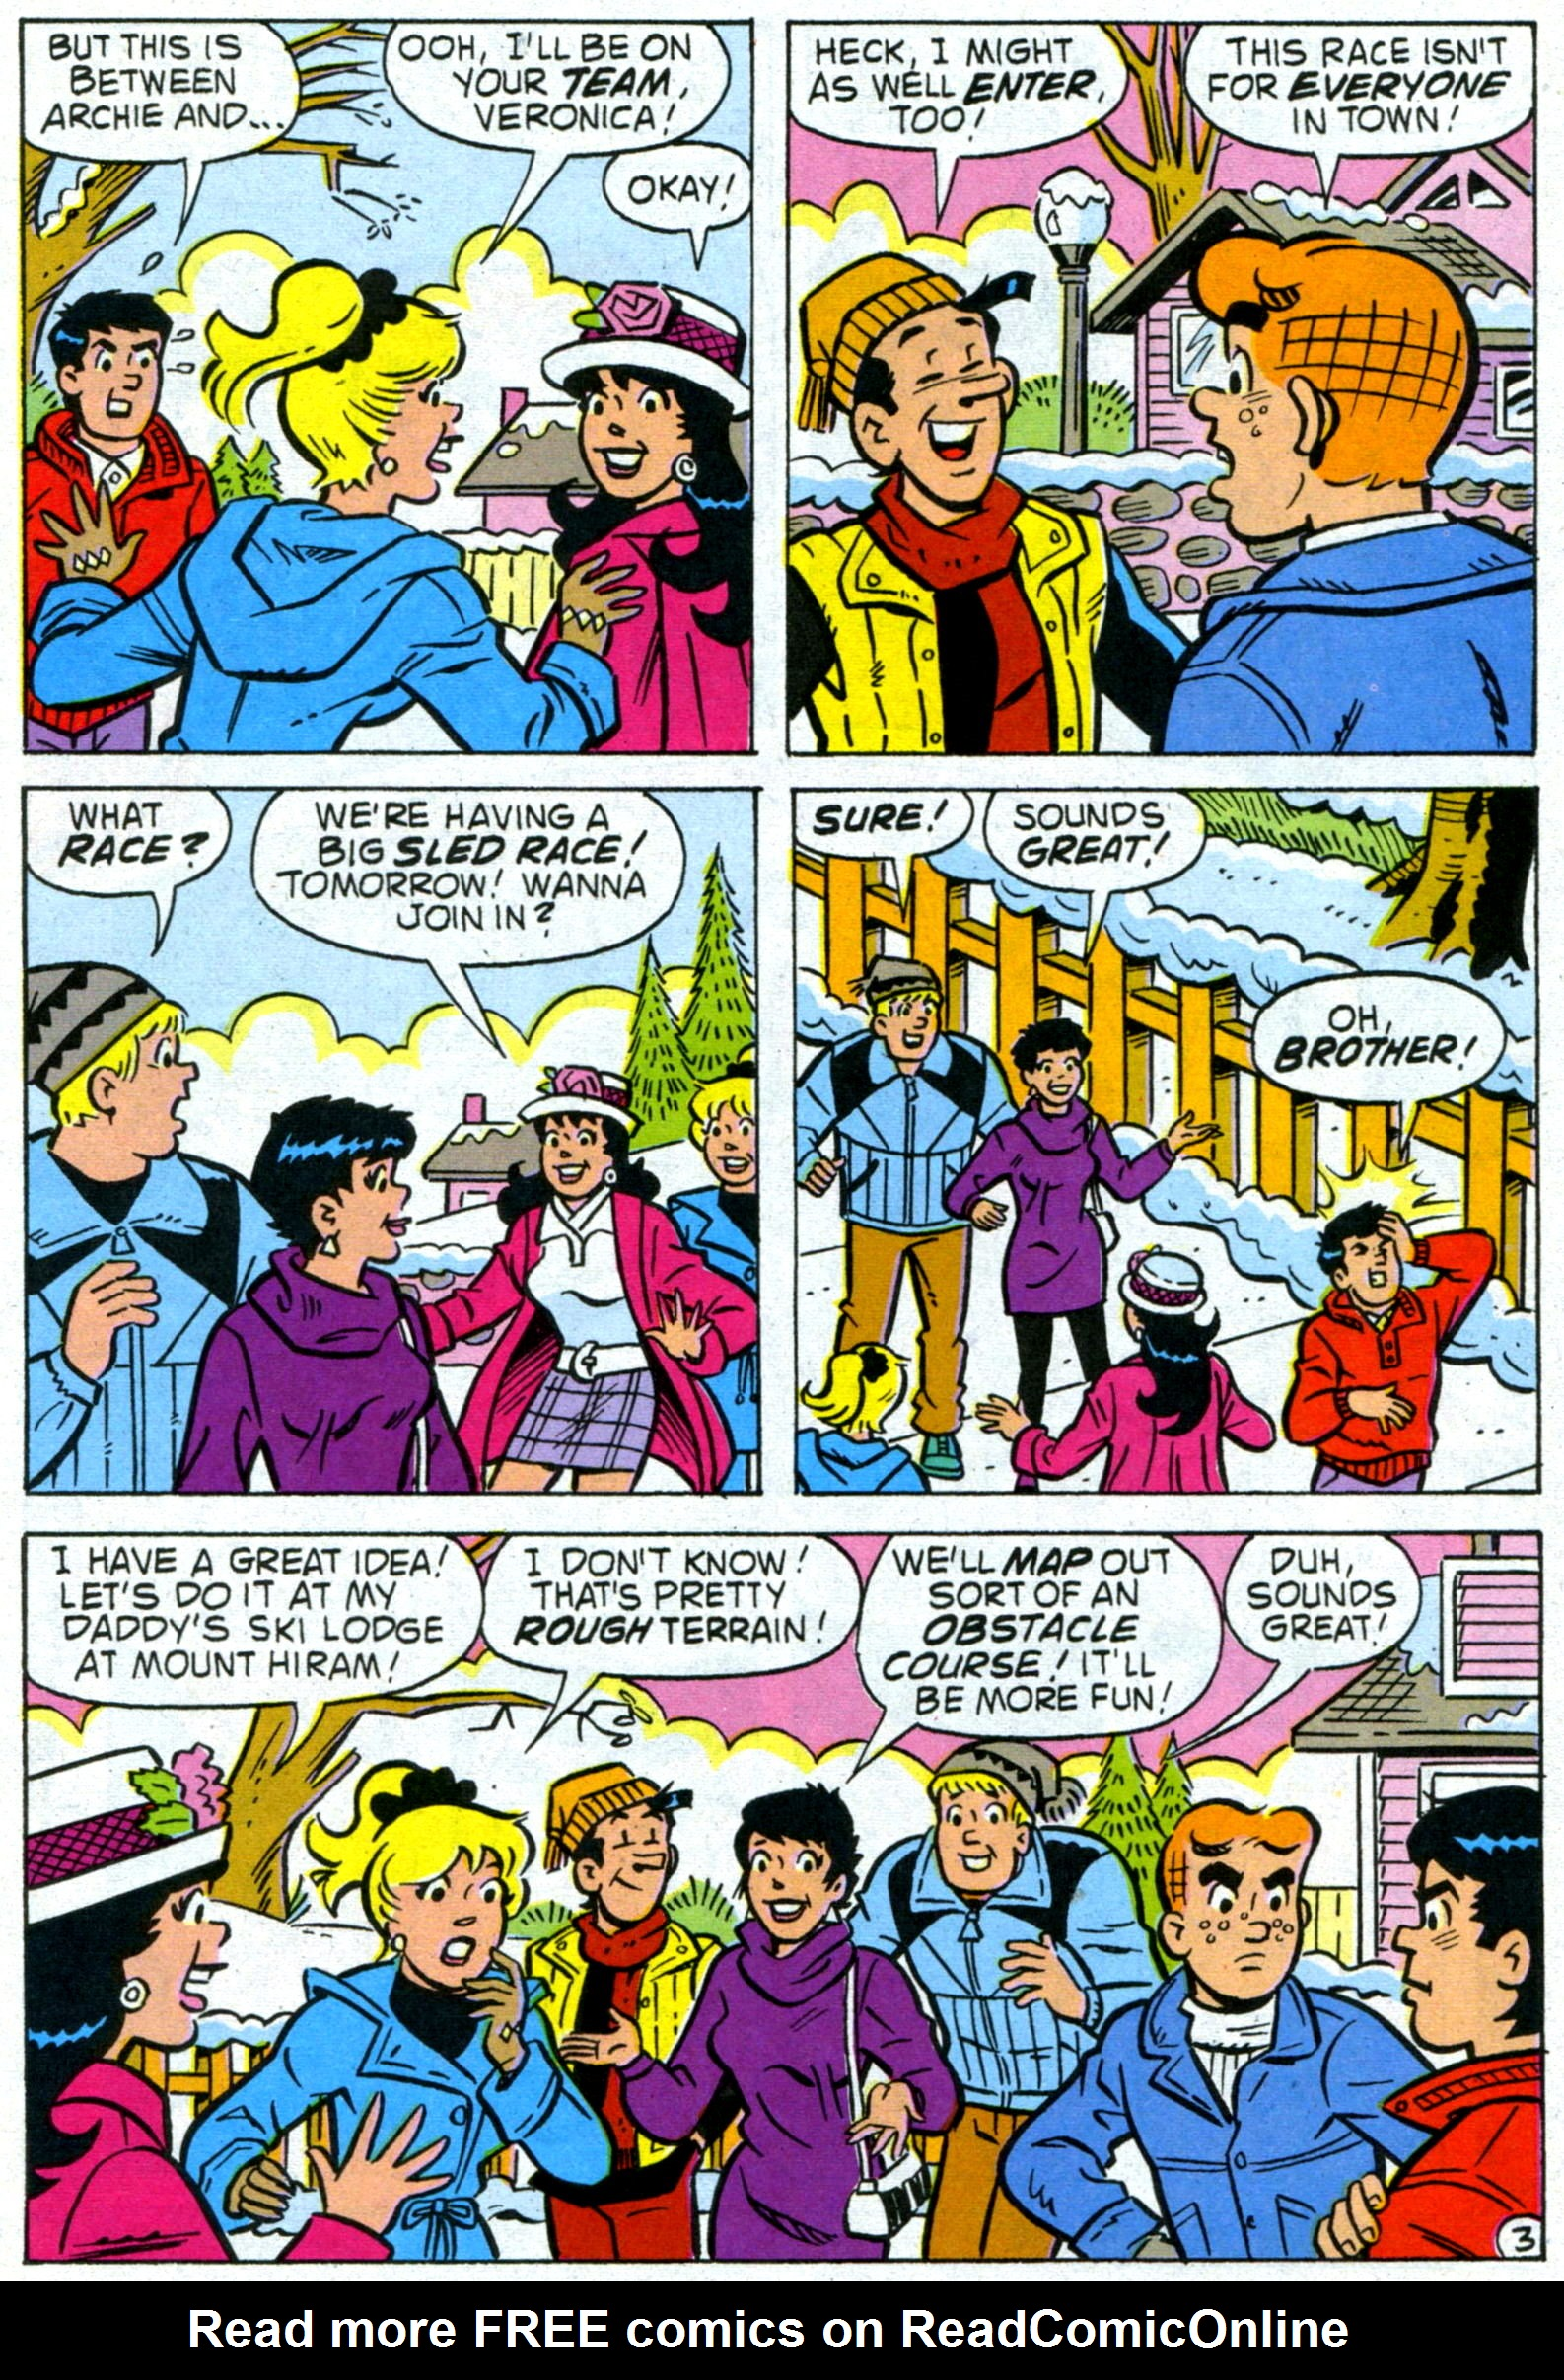 Read online World of Archie comic -  Issue #8 - 5